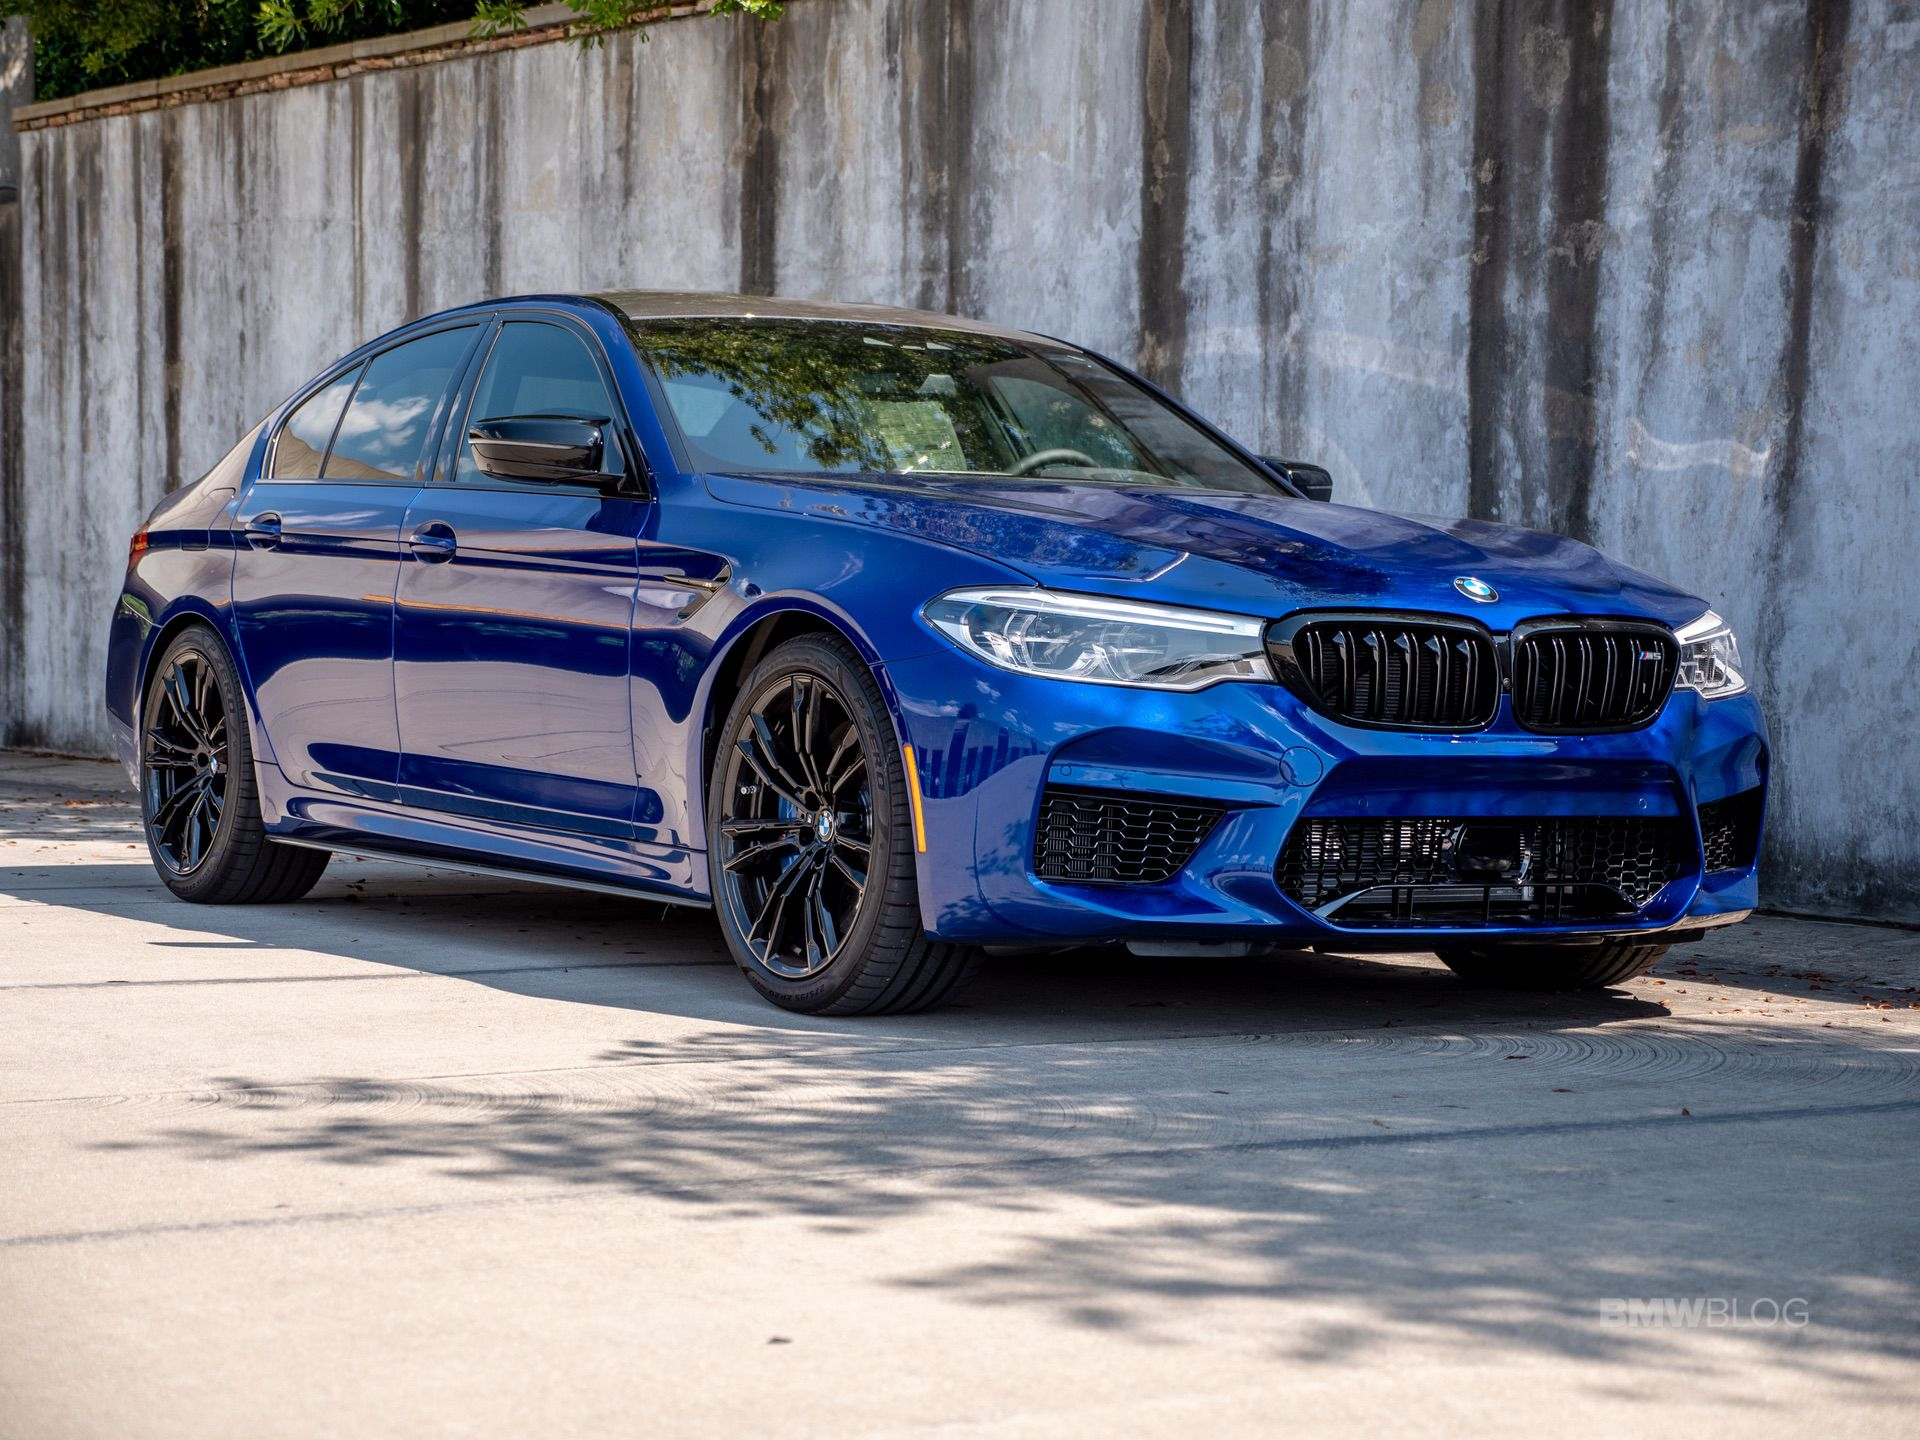 2019 M5 Comp in Marina Bay Blue Metallic 10